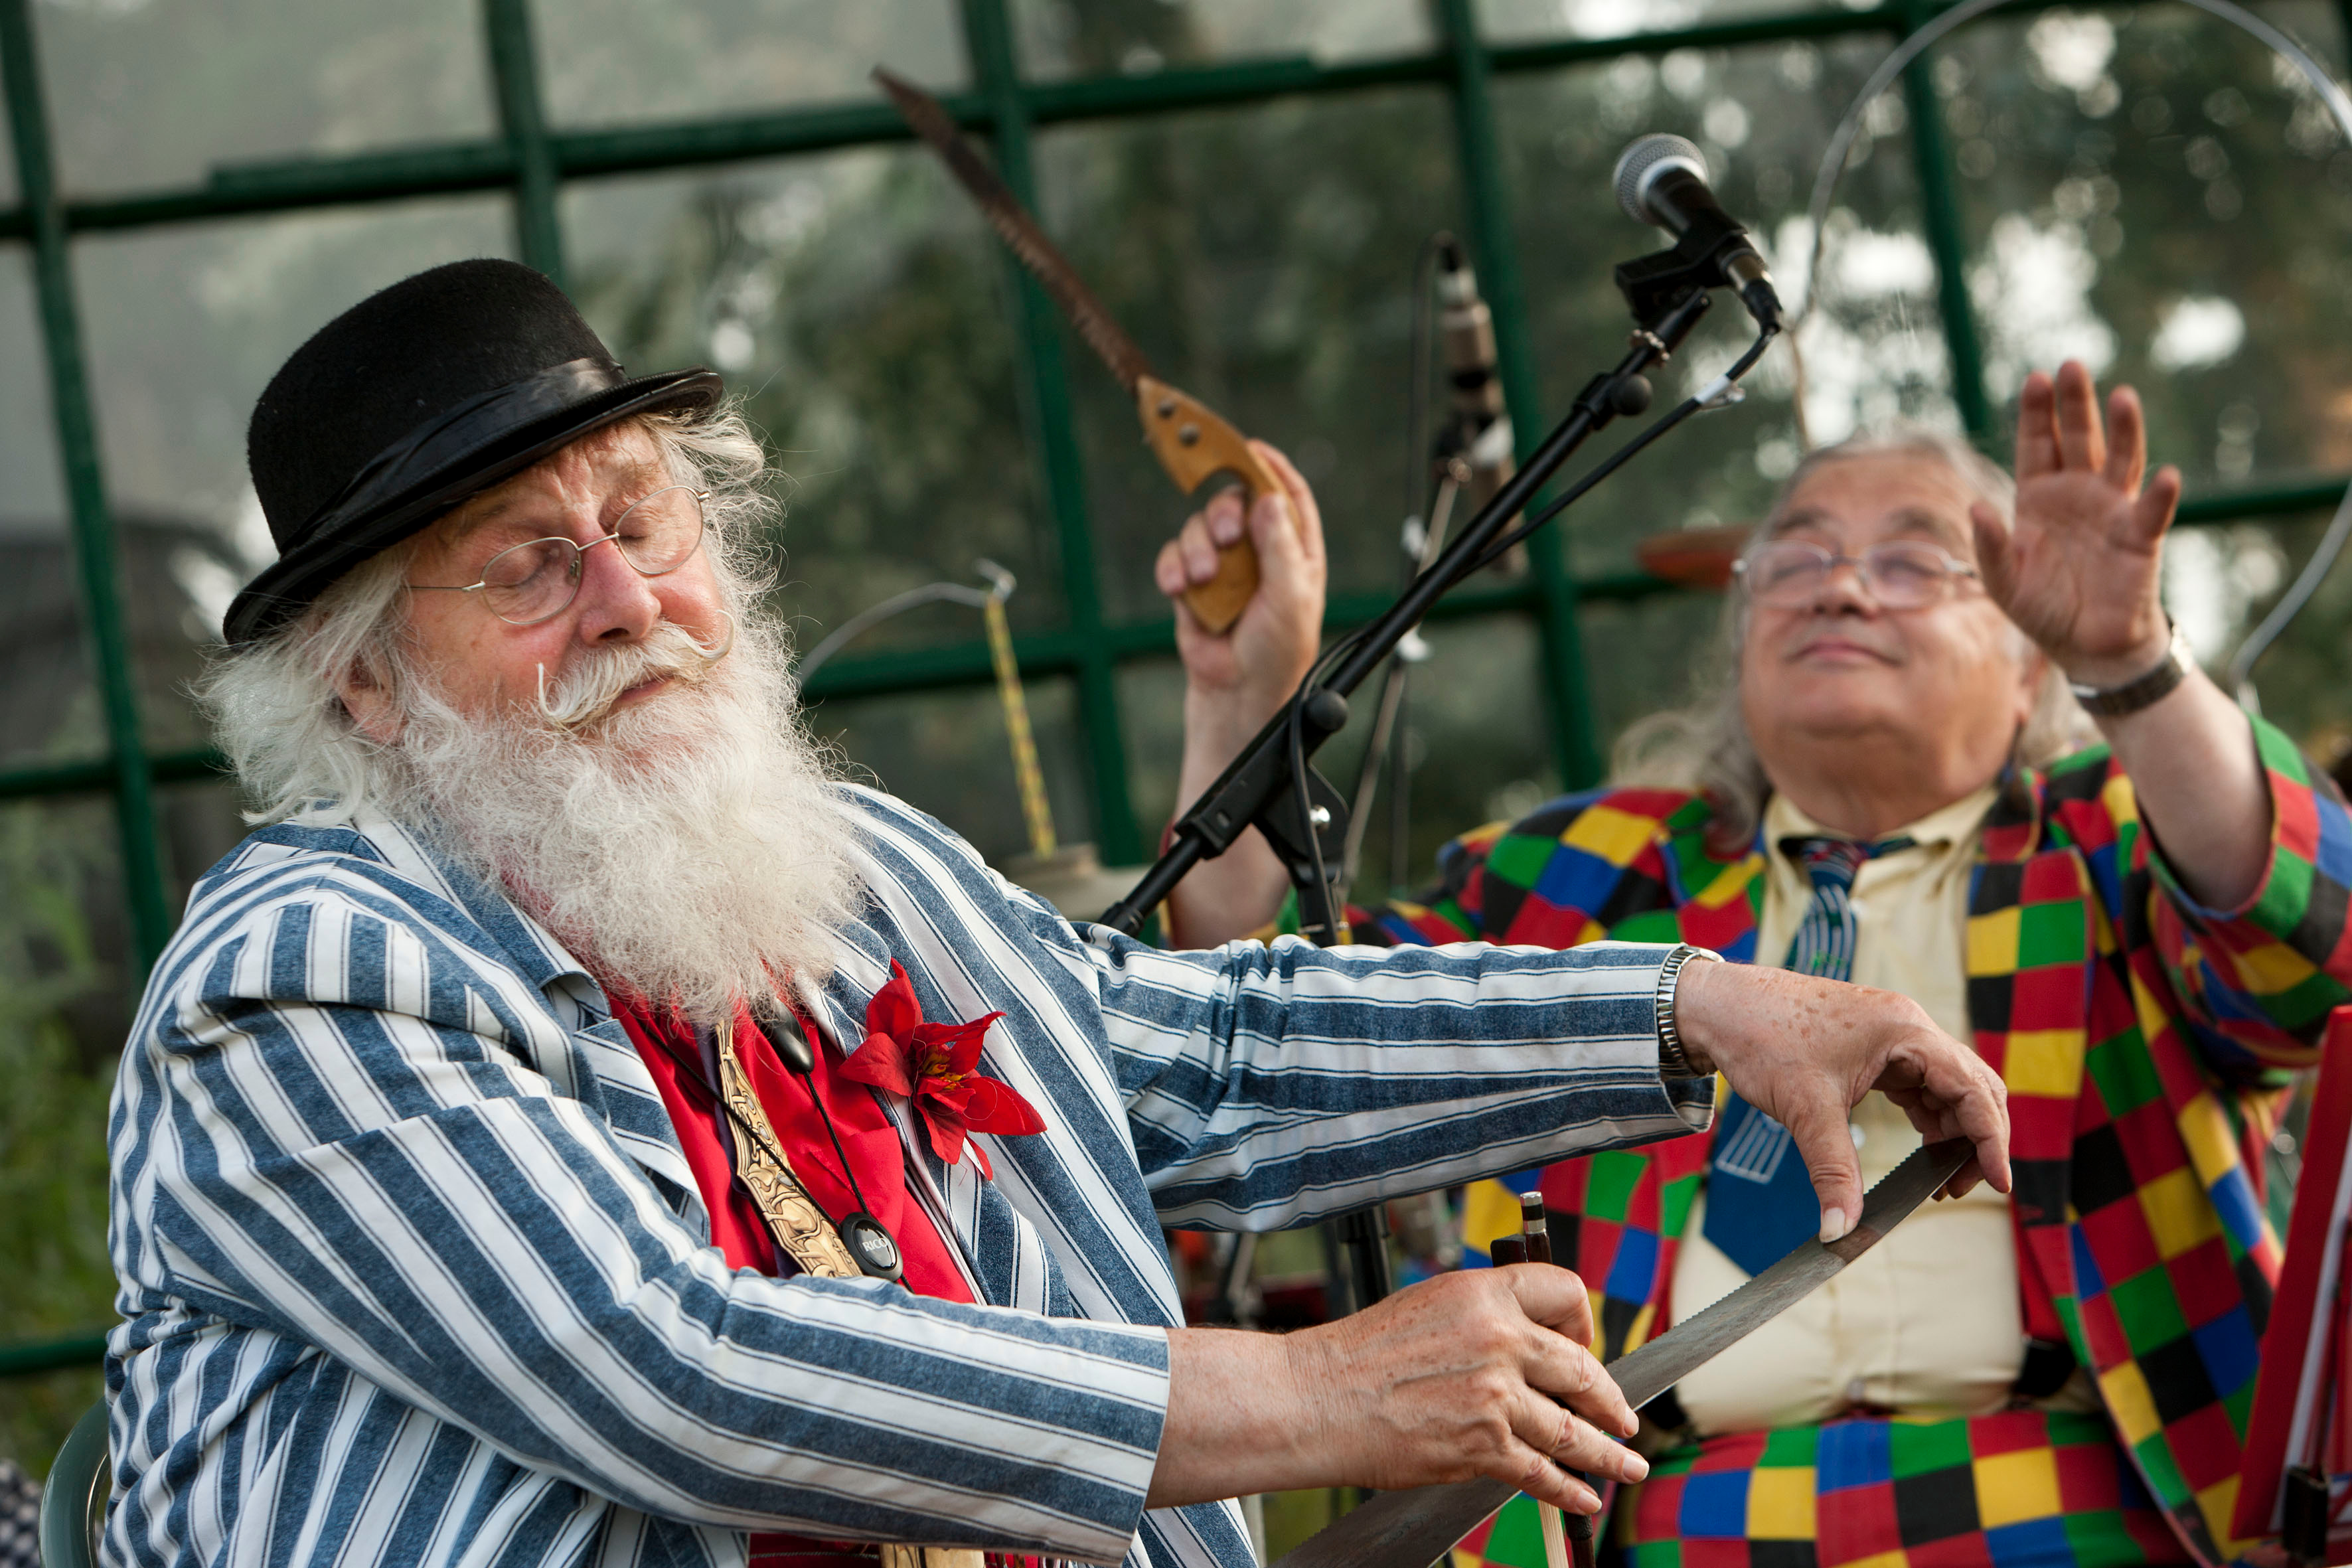 England, Birmingham, 14-07-13 Bob Kerr & his Whoopee band at the Botanical Gardens. © Photo Merlin Daleman